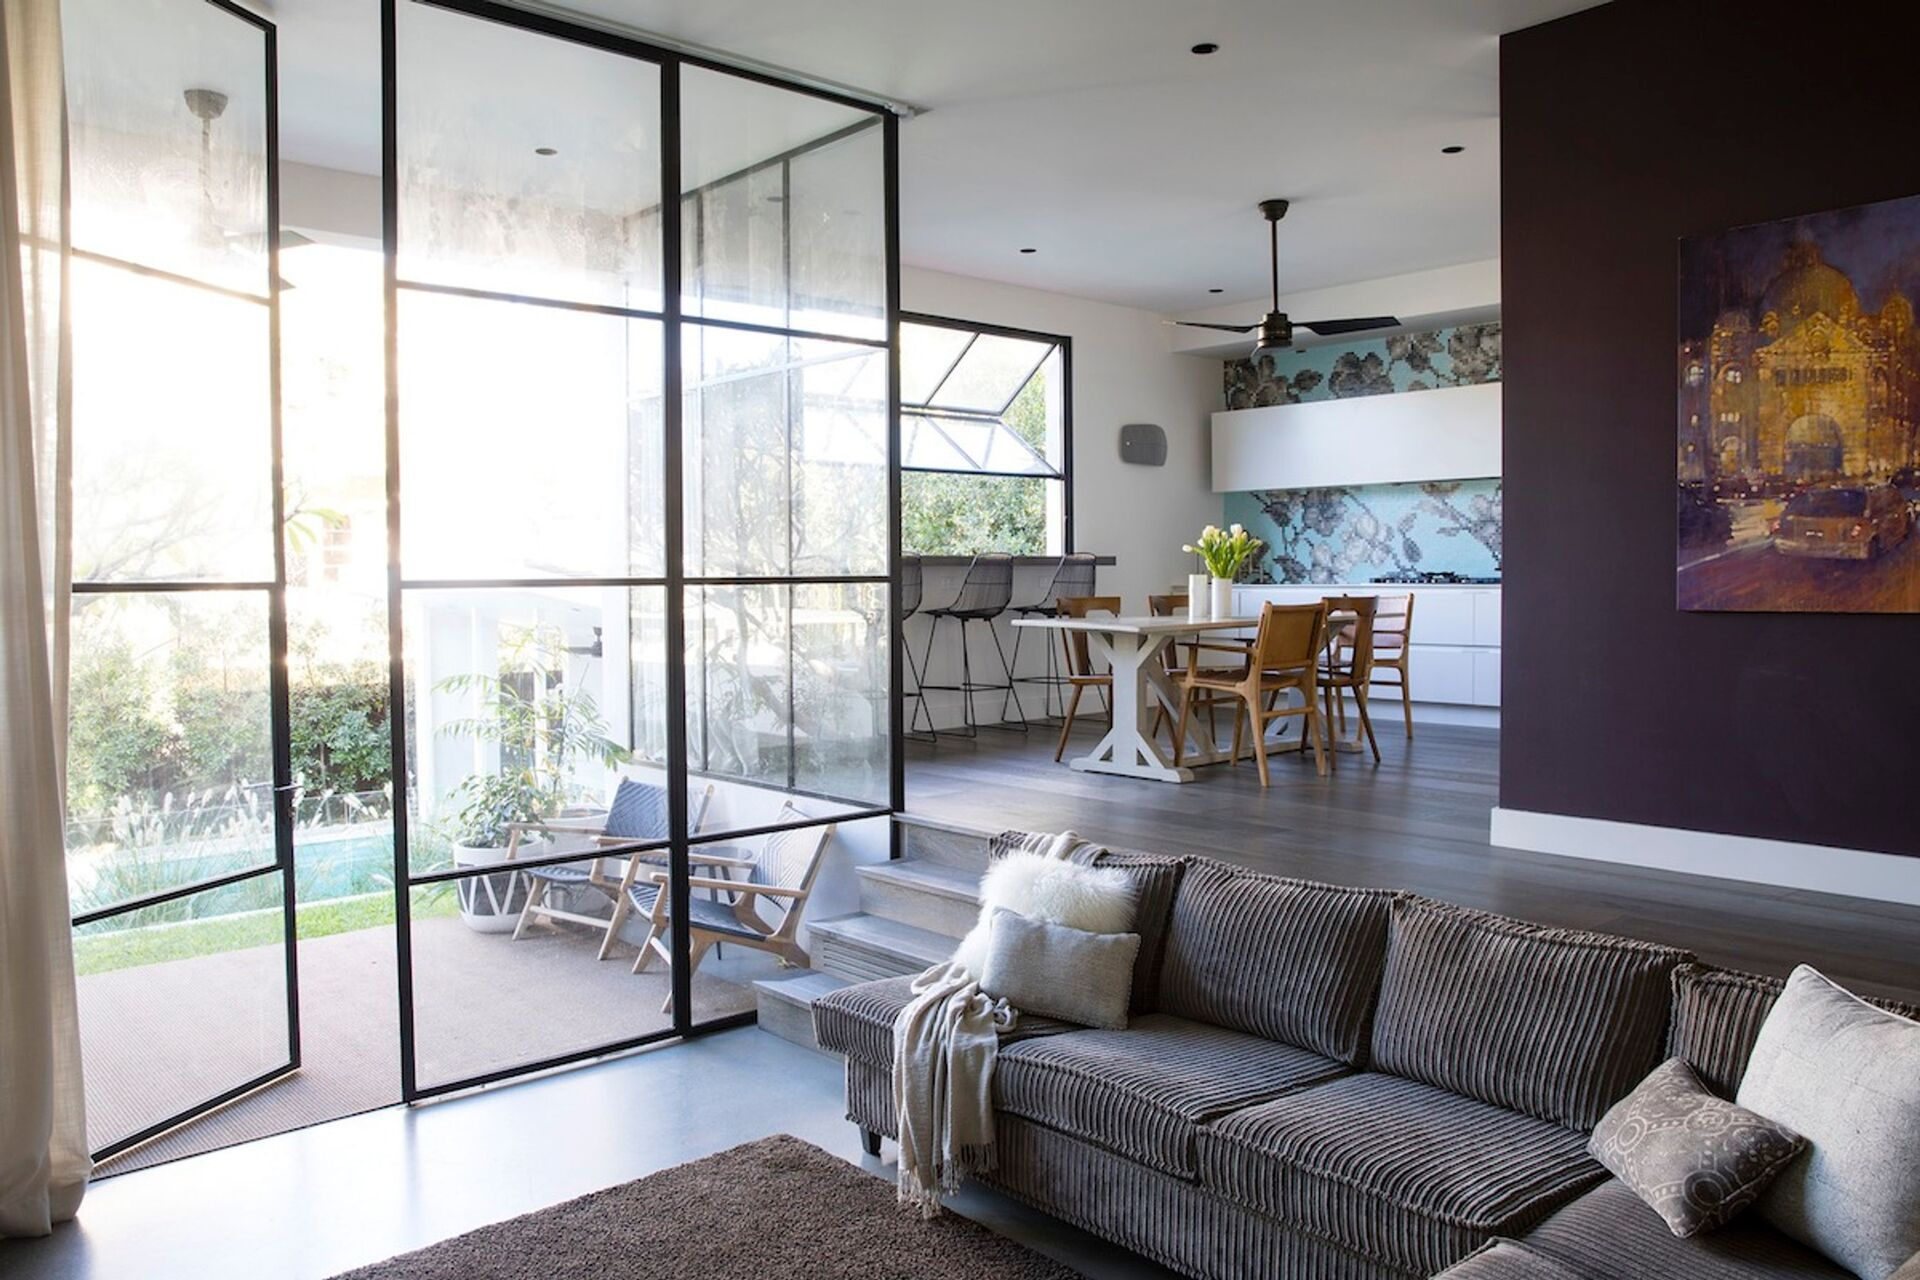 the sunken living area with views of the pool